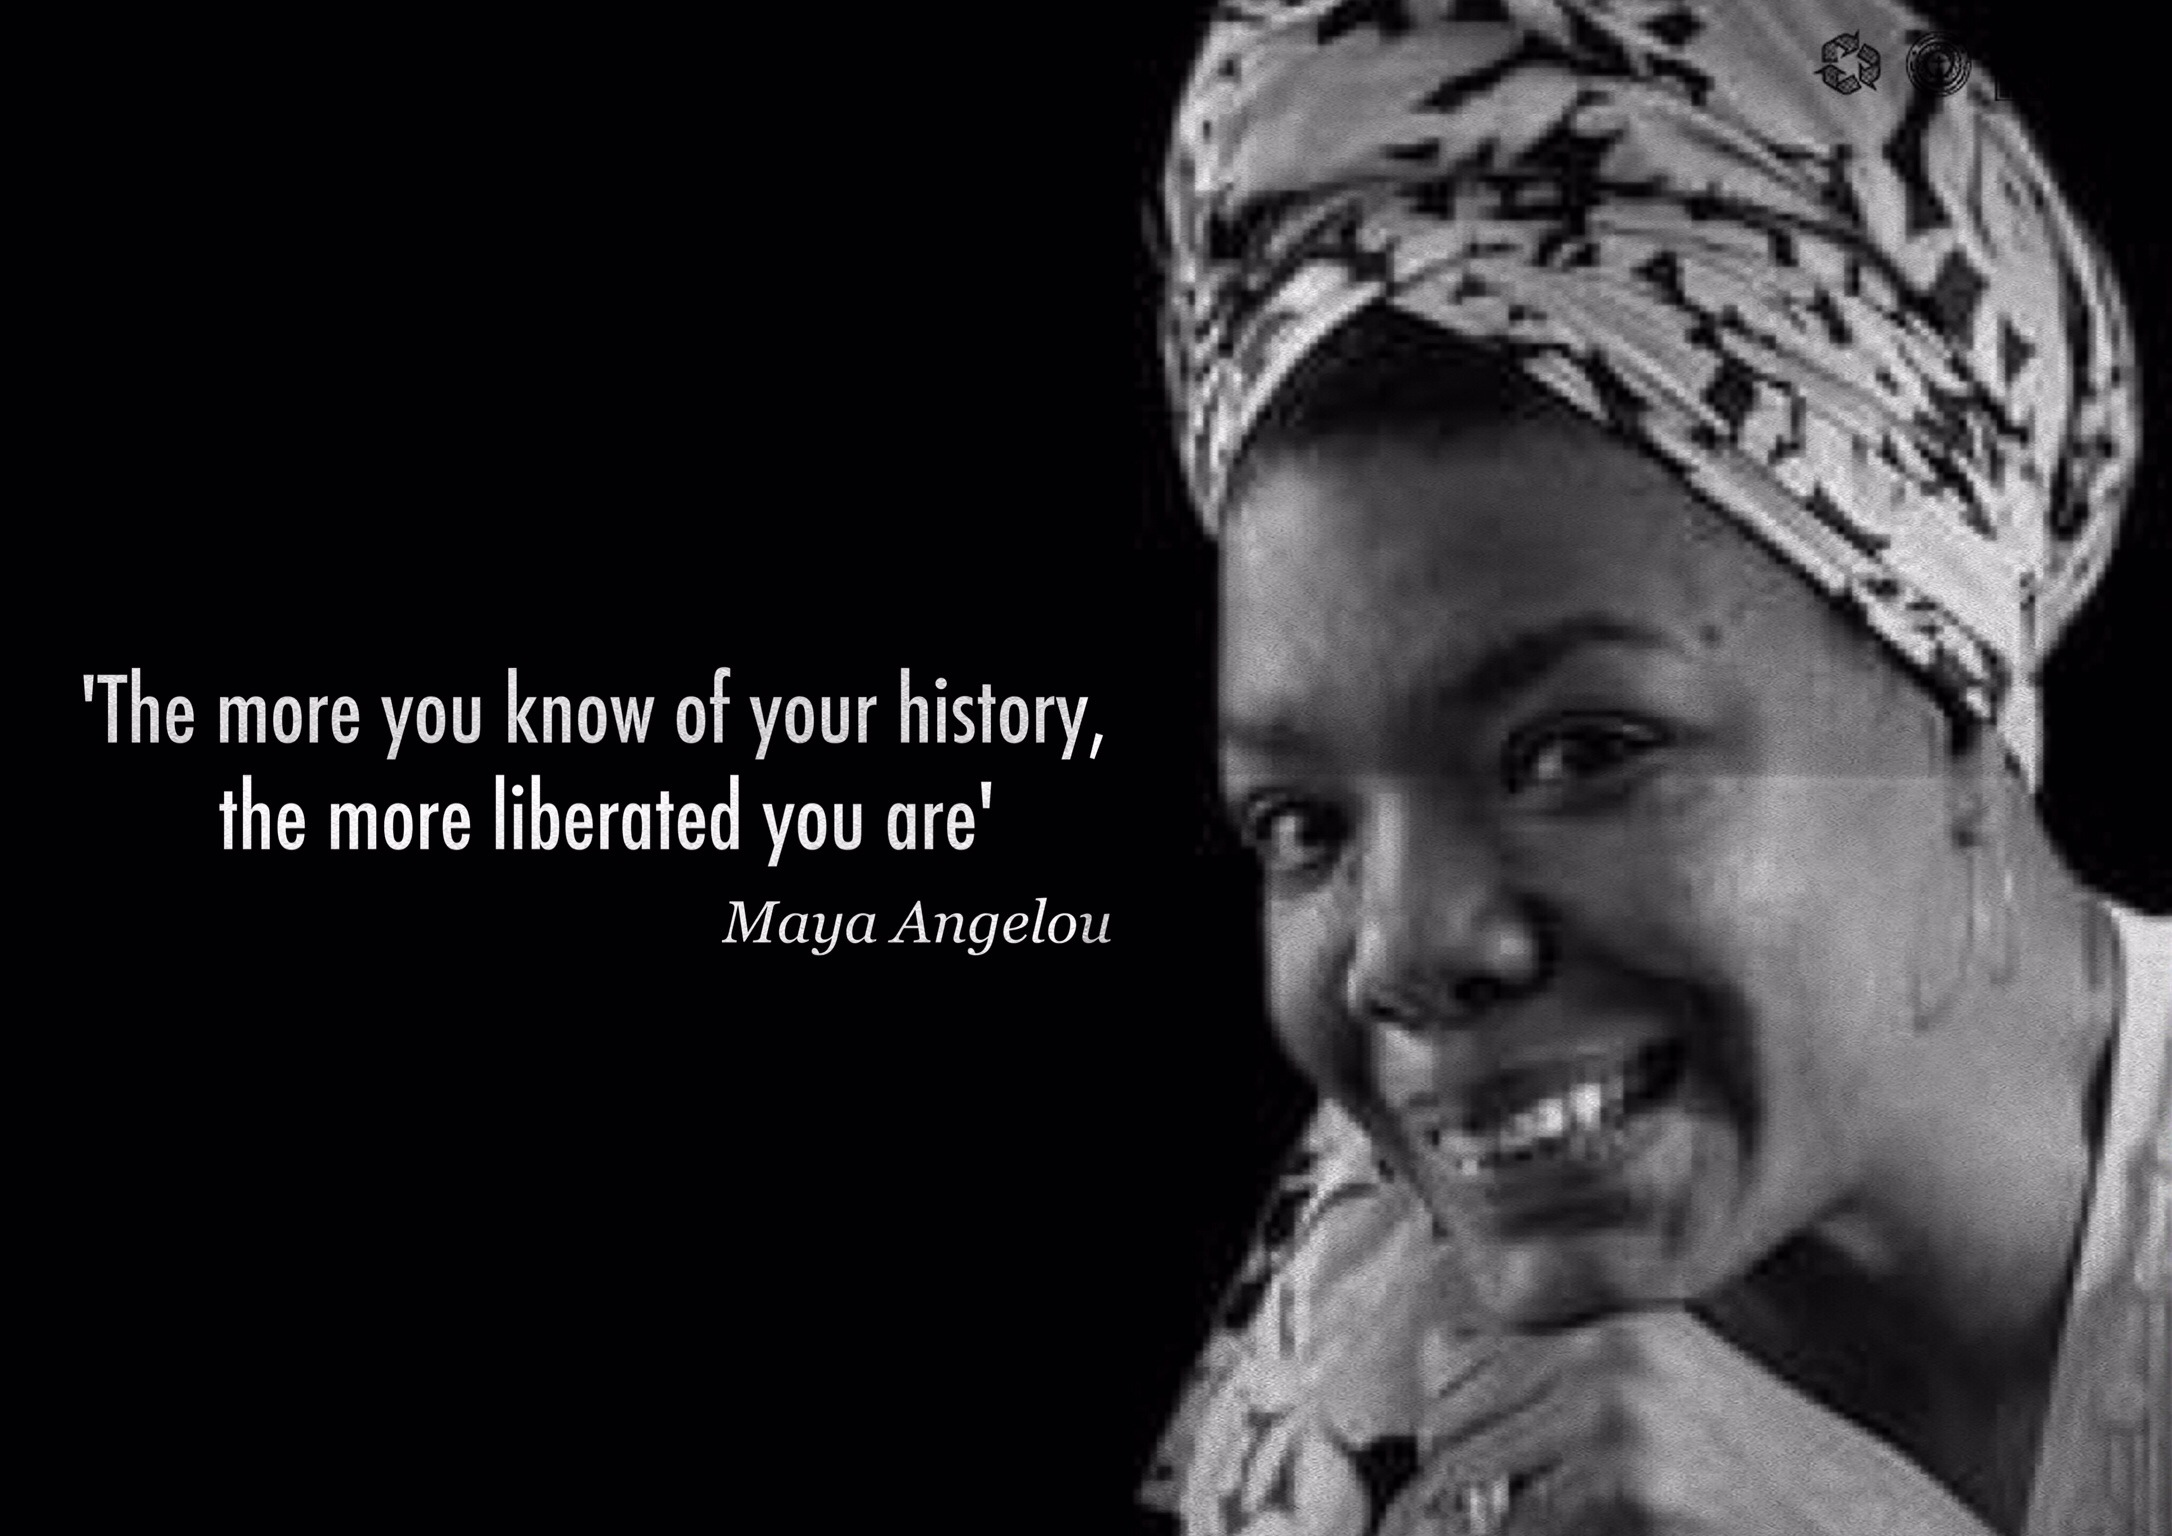 maya angelou quotes 123